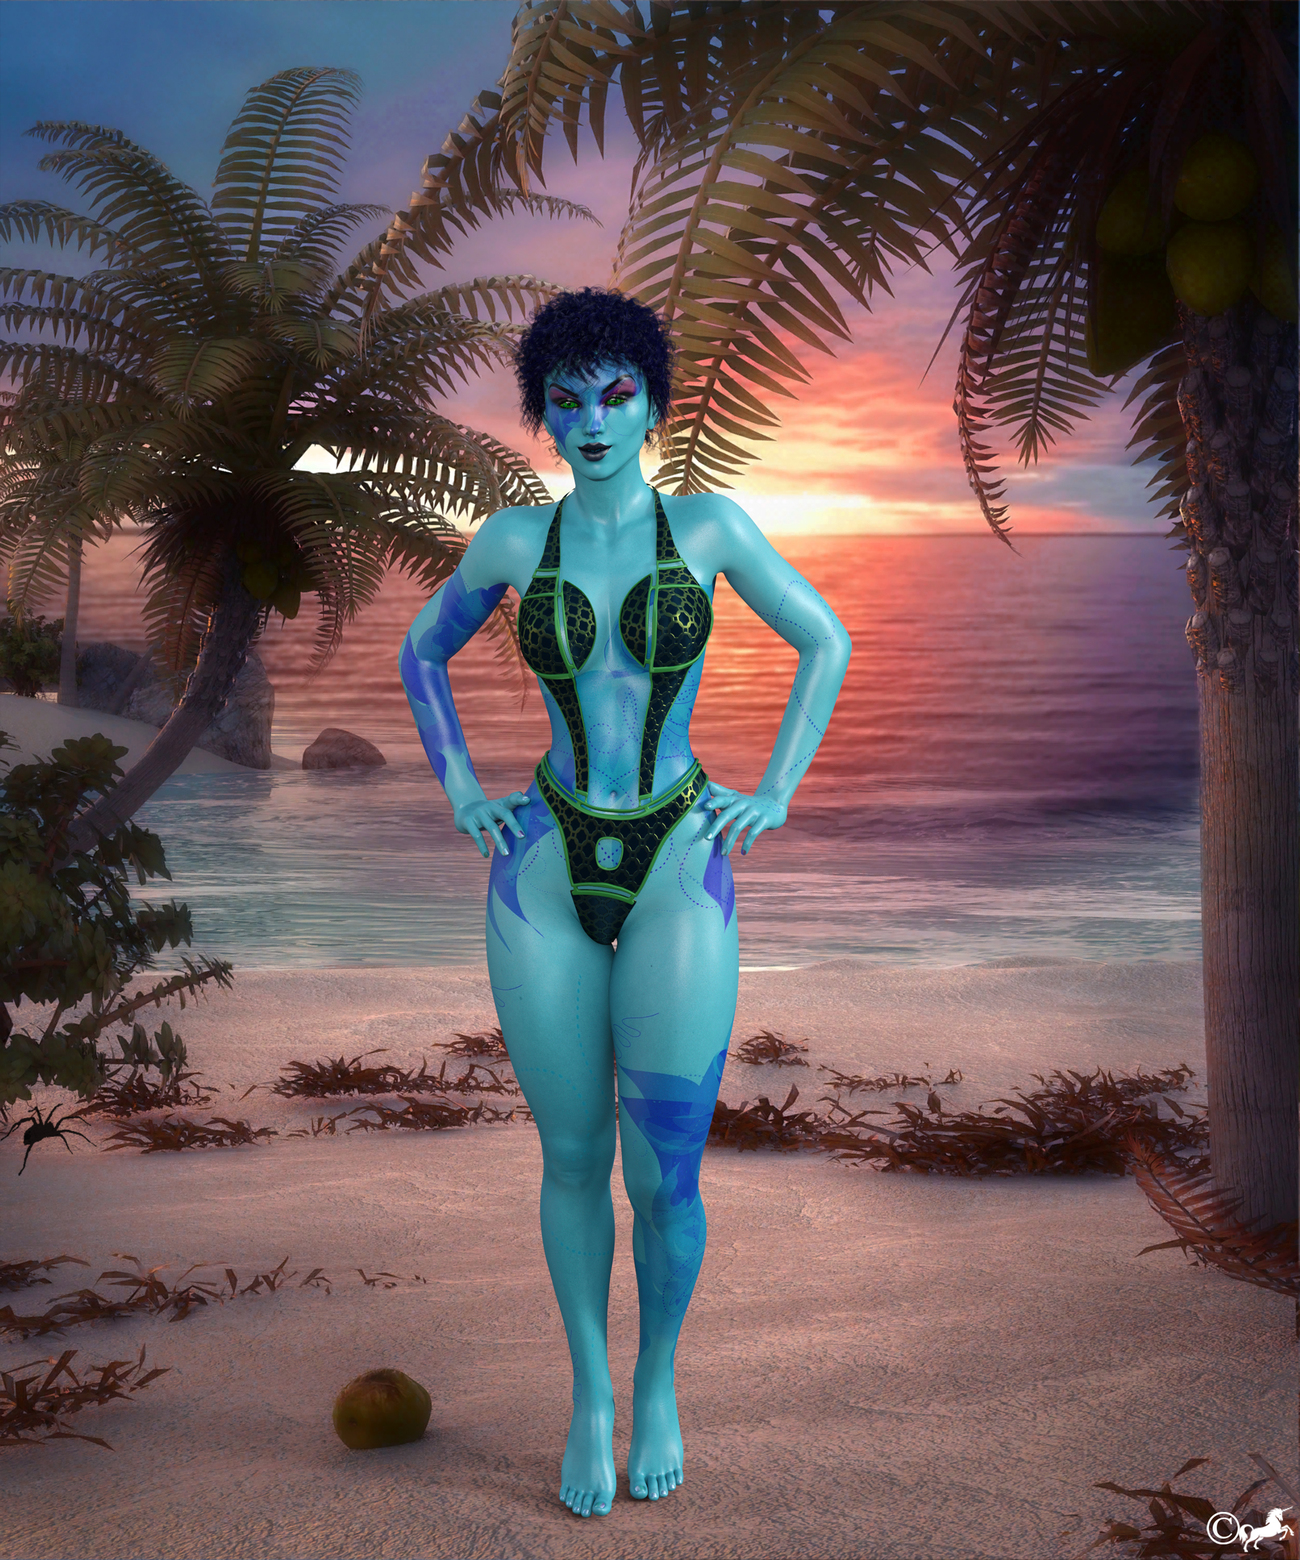 DAZ 270 or Alien Beach beauty by miwi